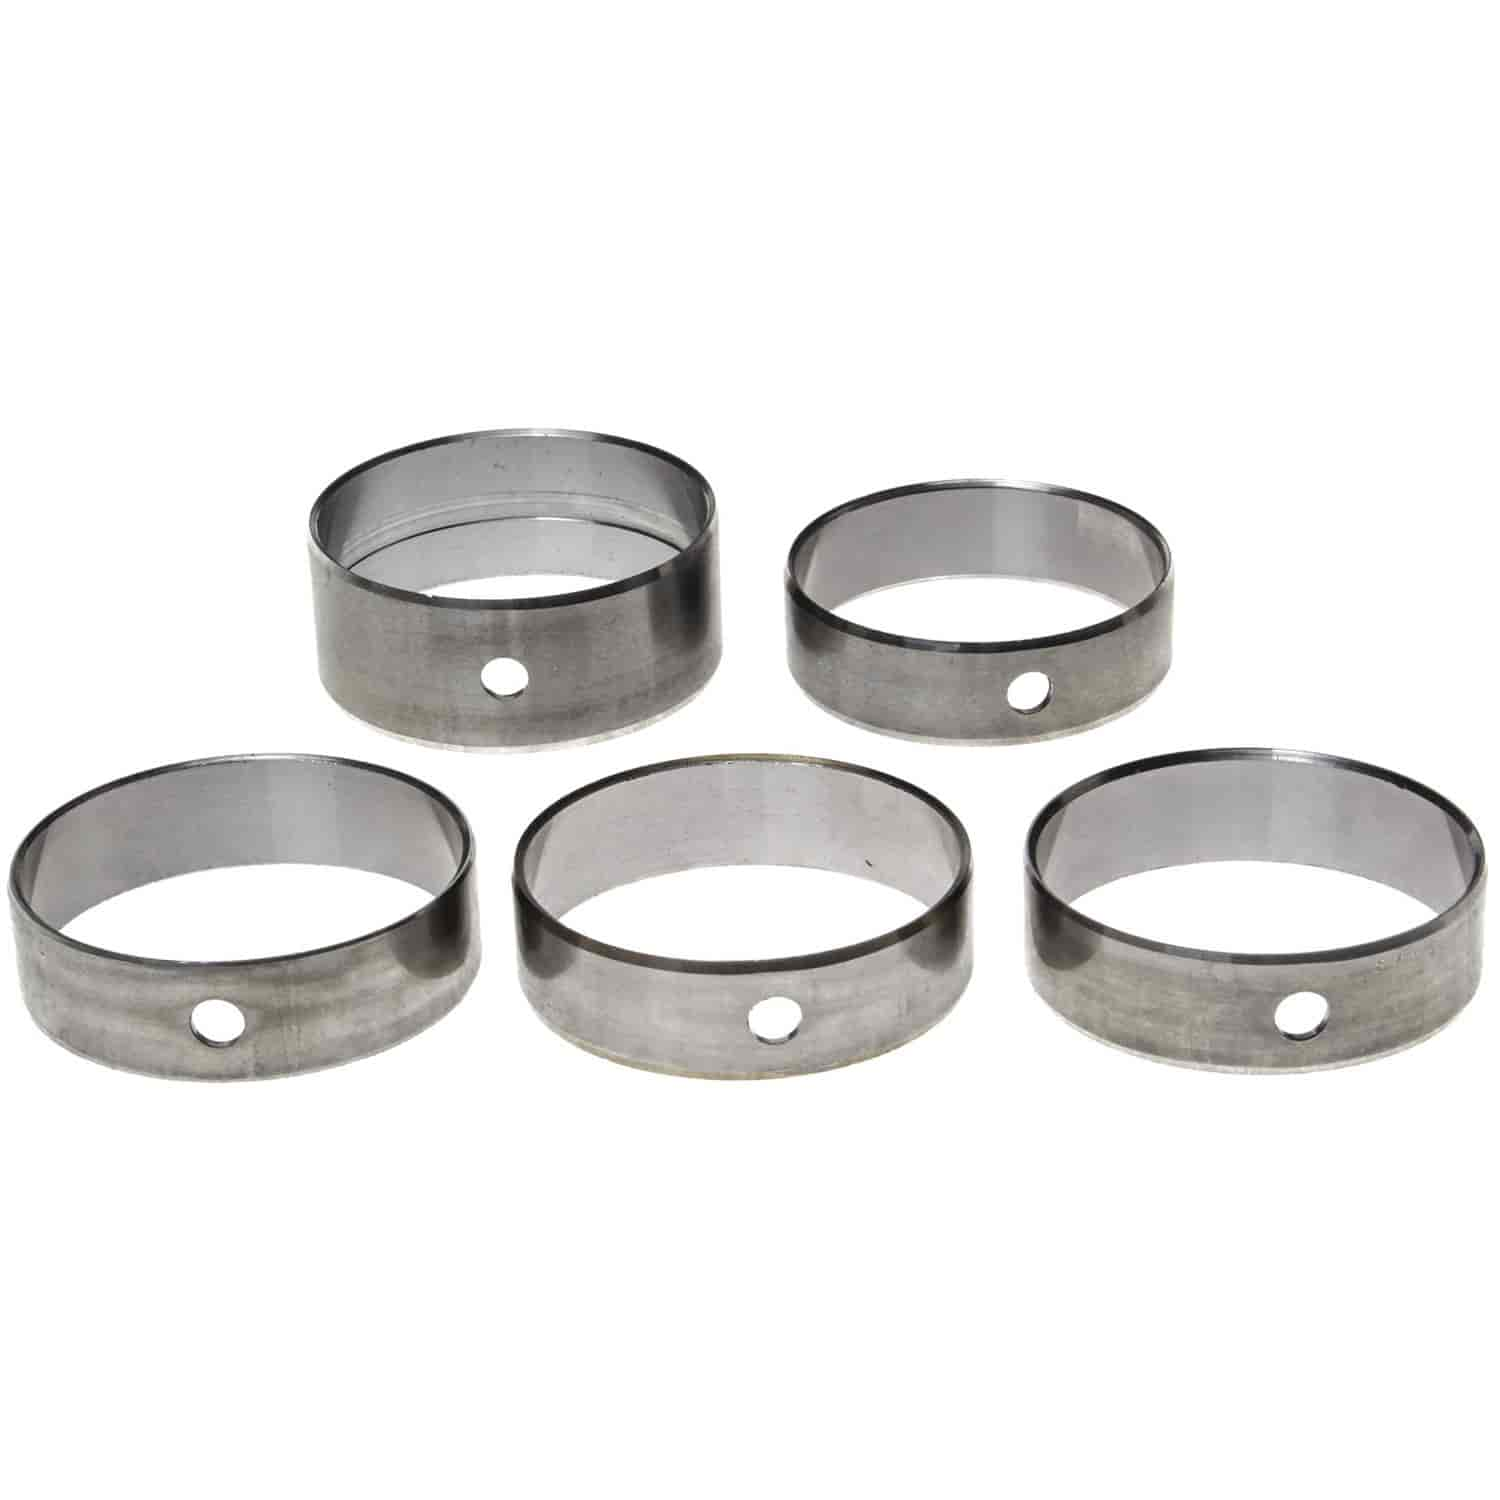 Clevite SH671S - Clevite 77 High-Performance Bearings